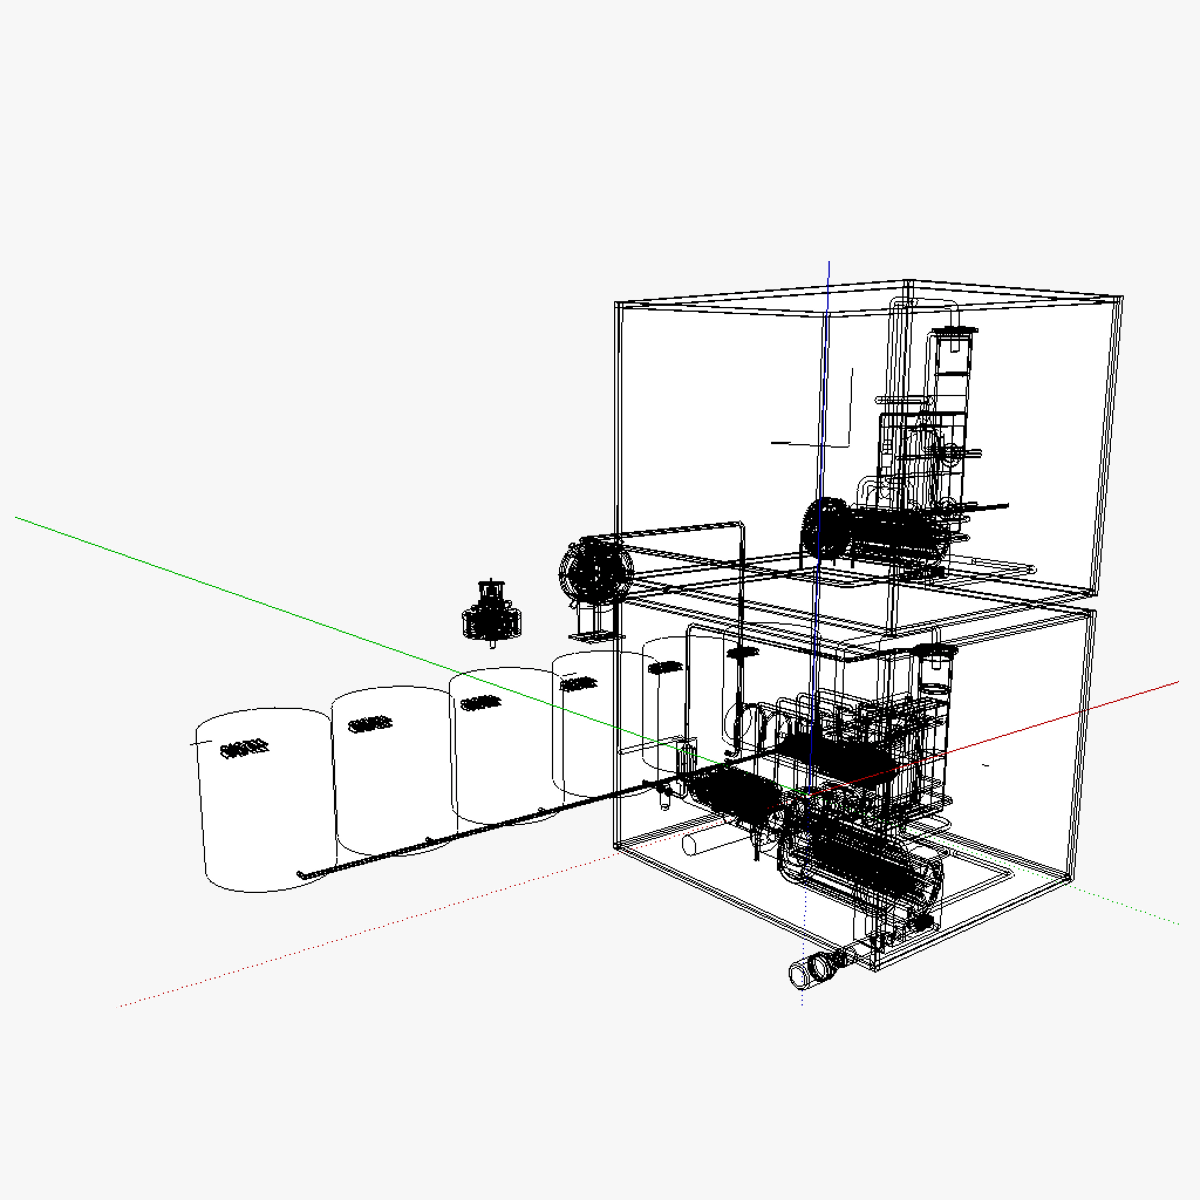 Compressed Air Energy And Use System Caes 3d Model